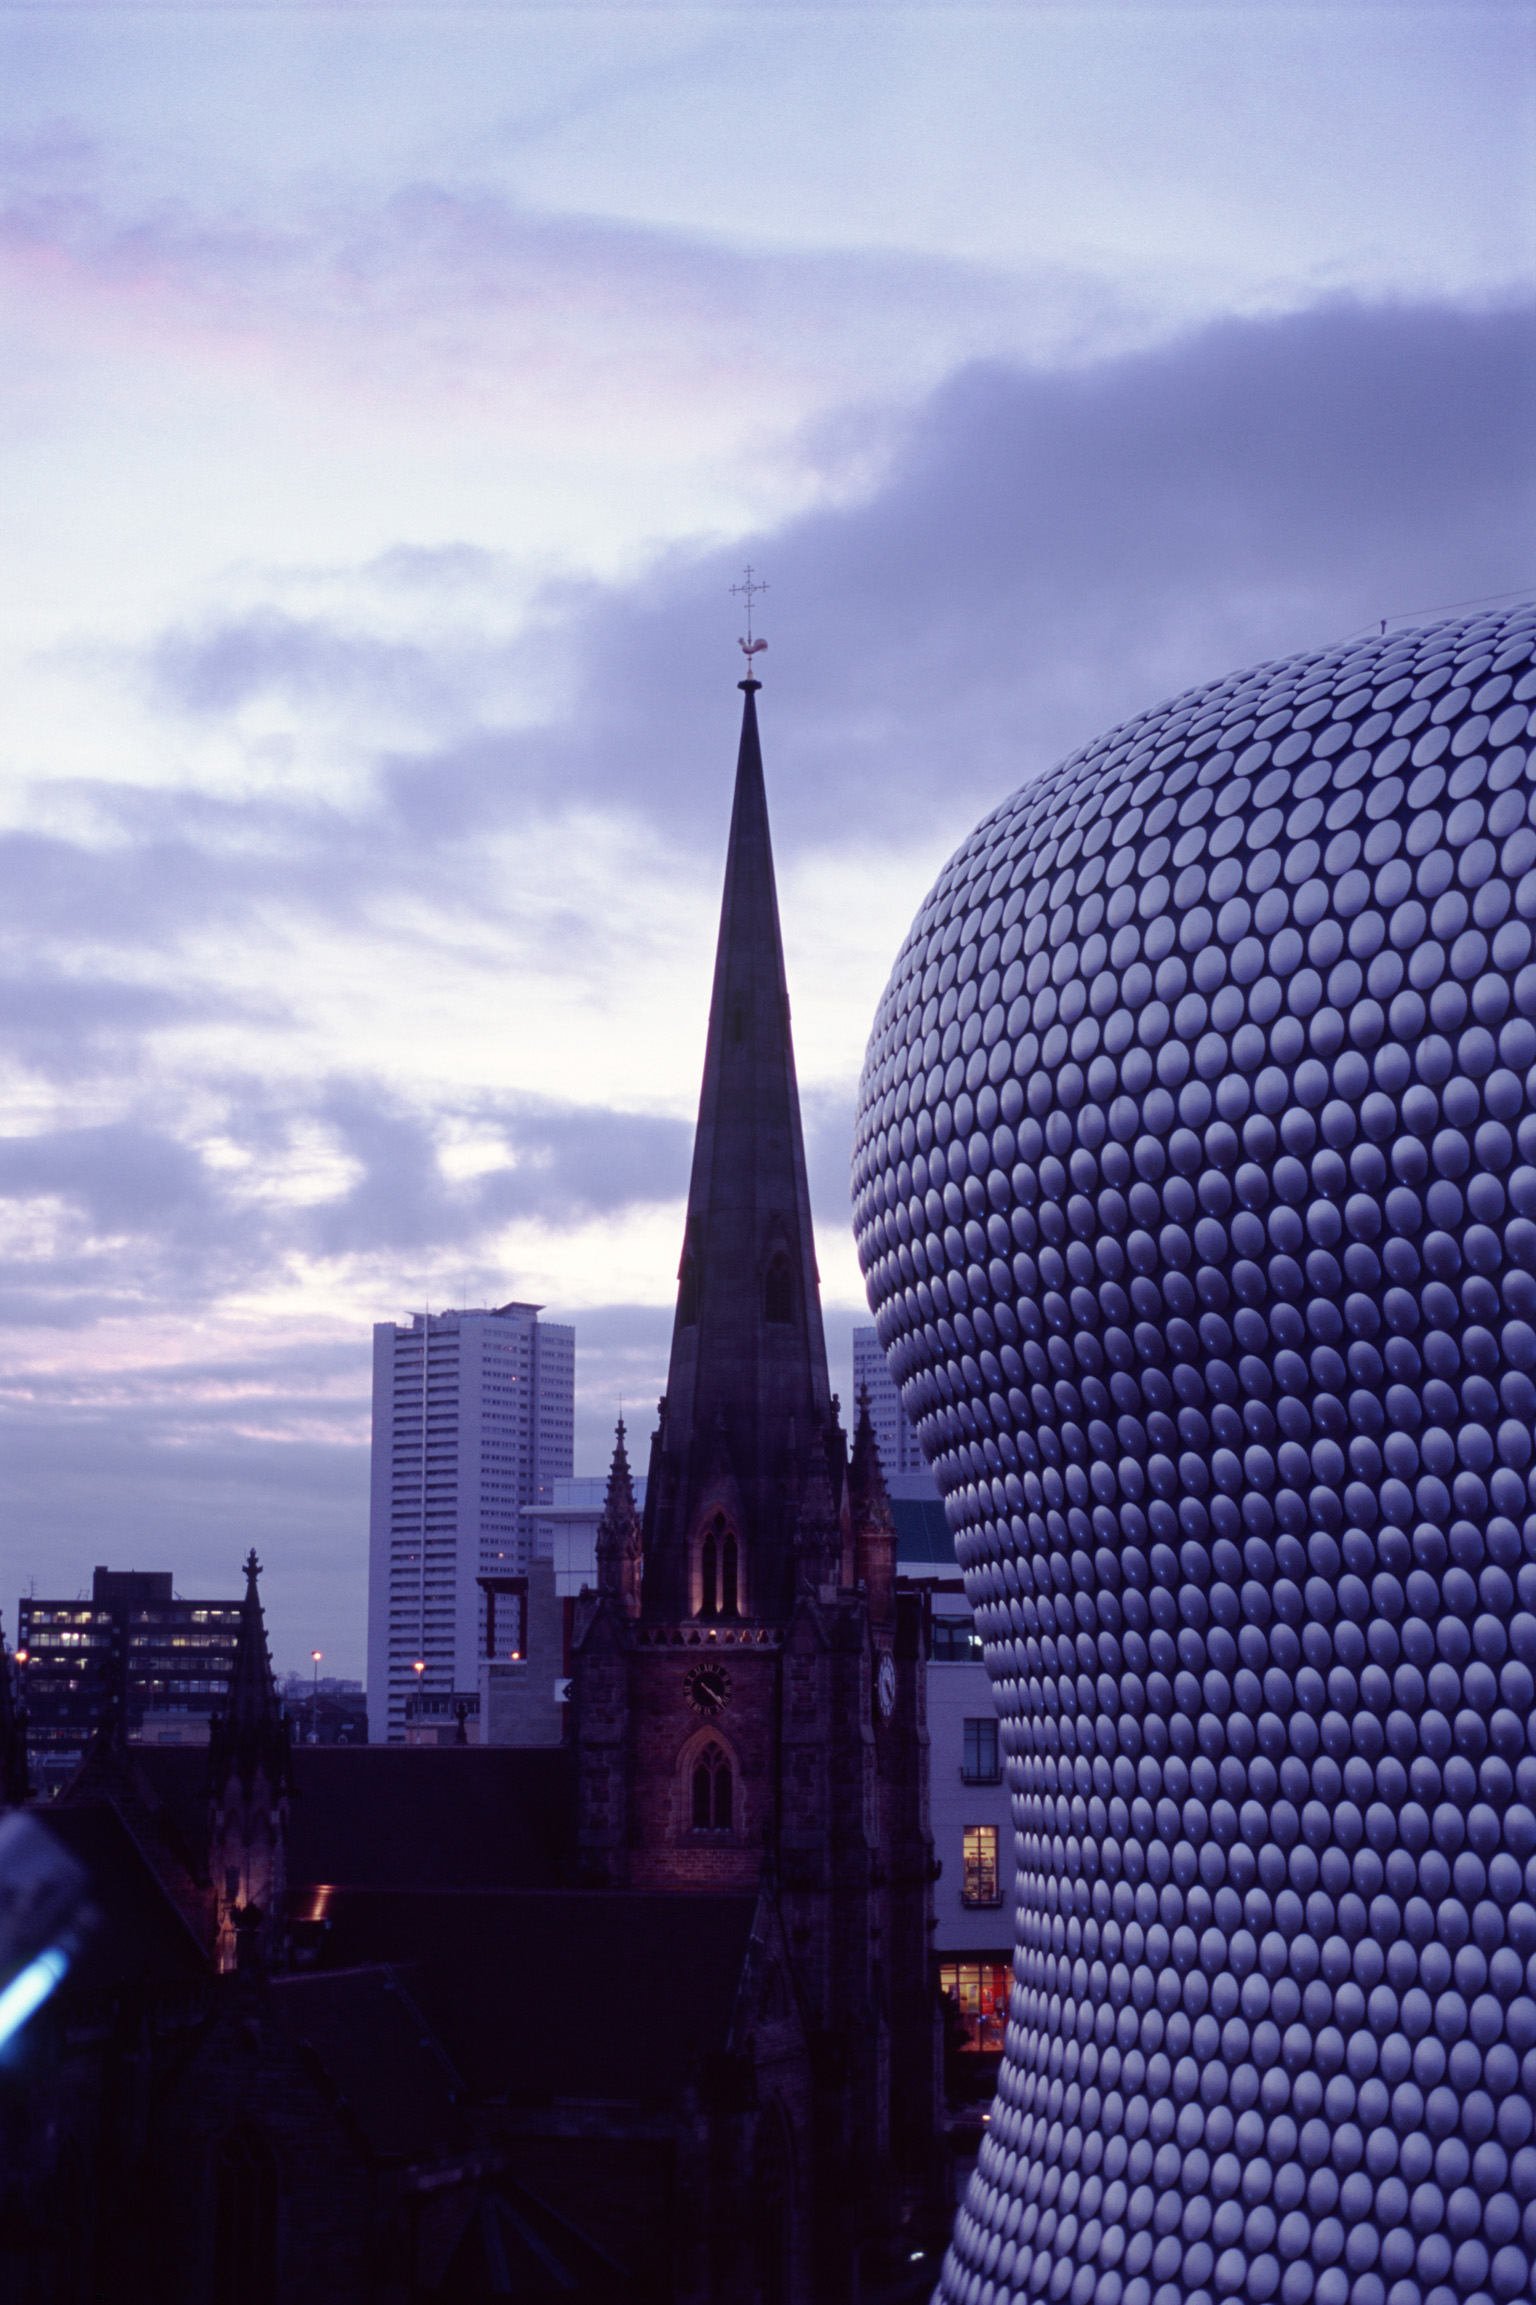 Free Stock photo of Exterior of the Bullring Centre with